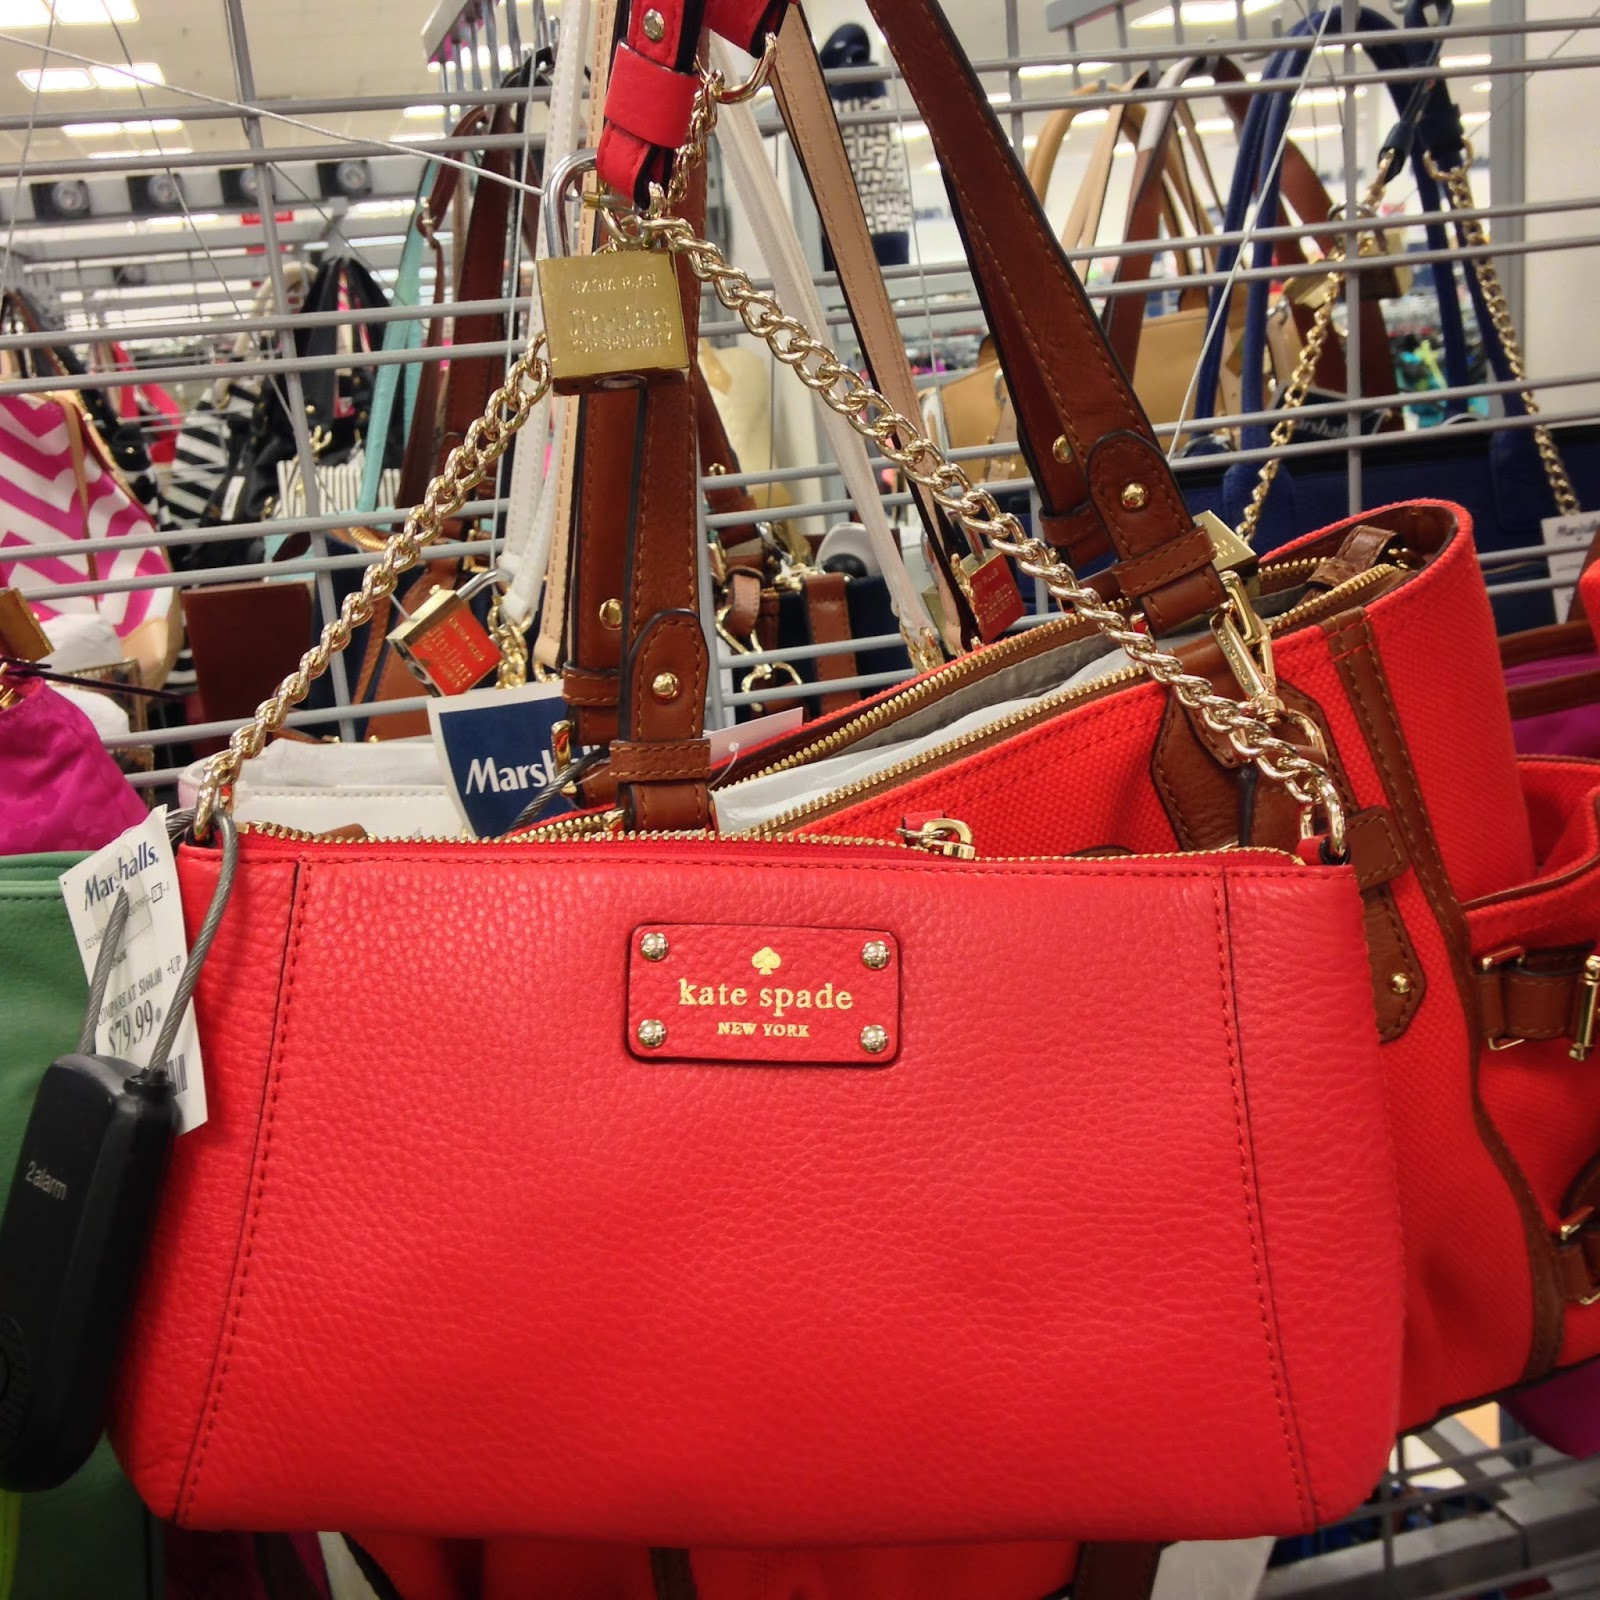 Tracy S Notebook Of Style Marshalls See 40 In Pics Shoes Bags Kate Spade Saay For 20